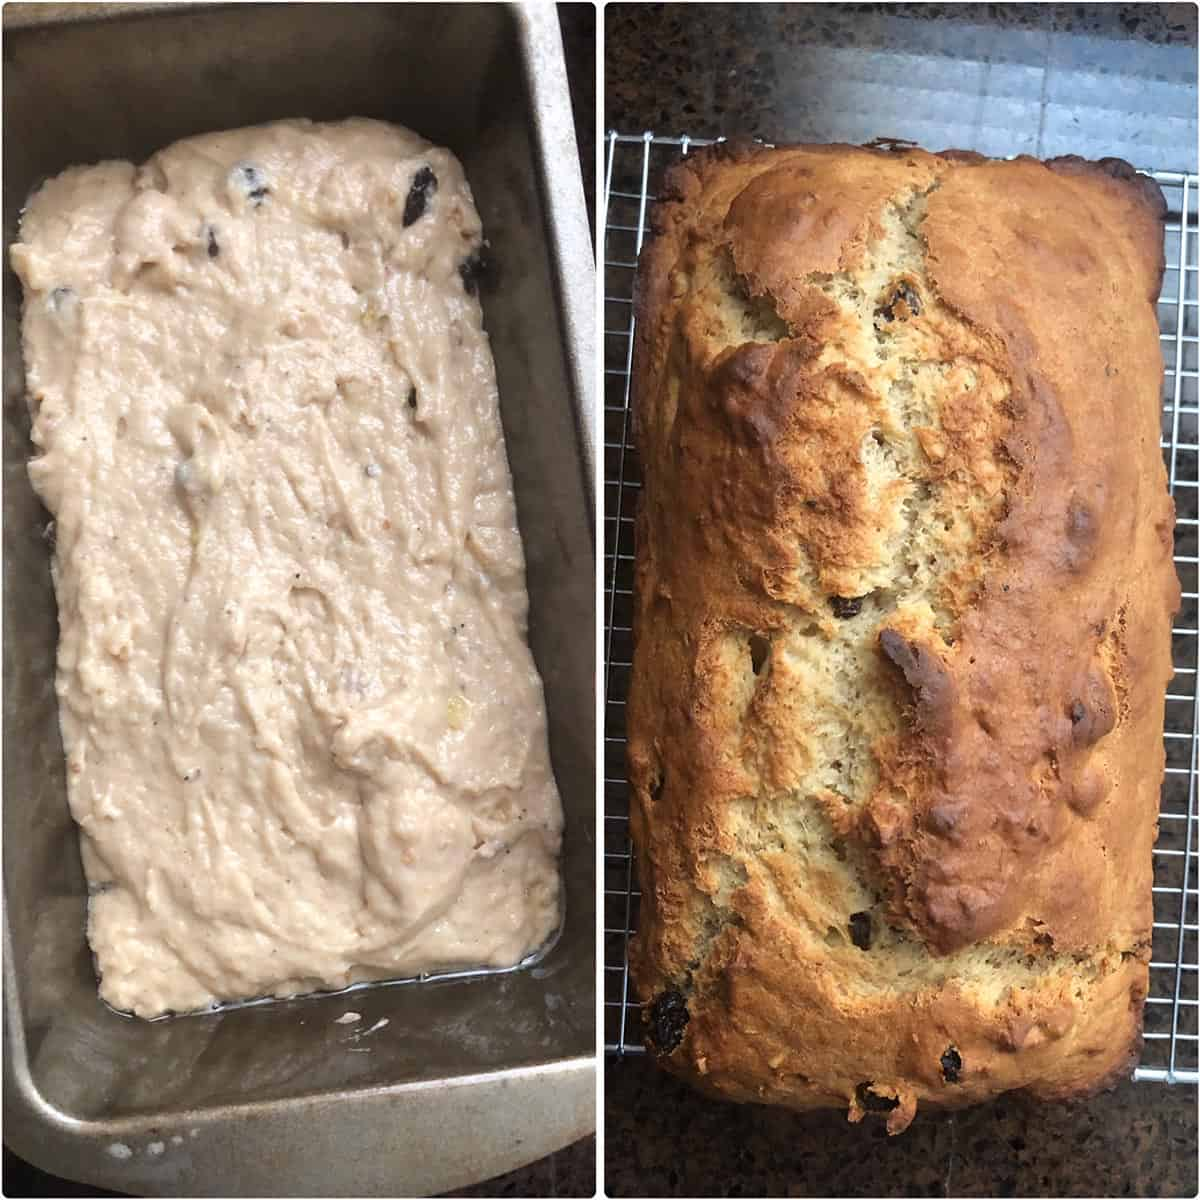 Side by side photos of before and after baking